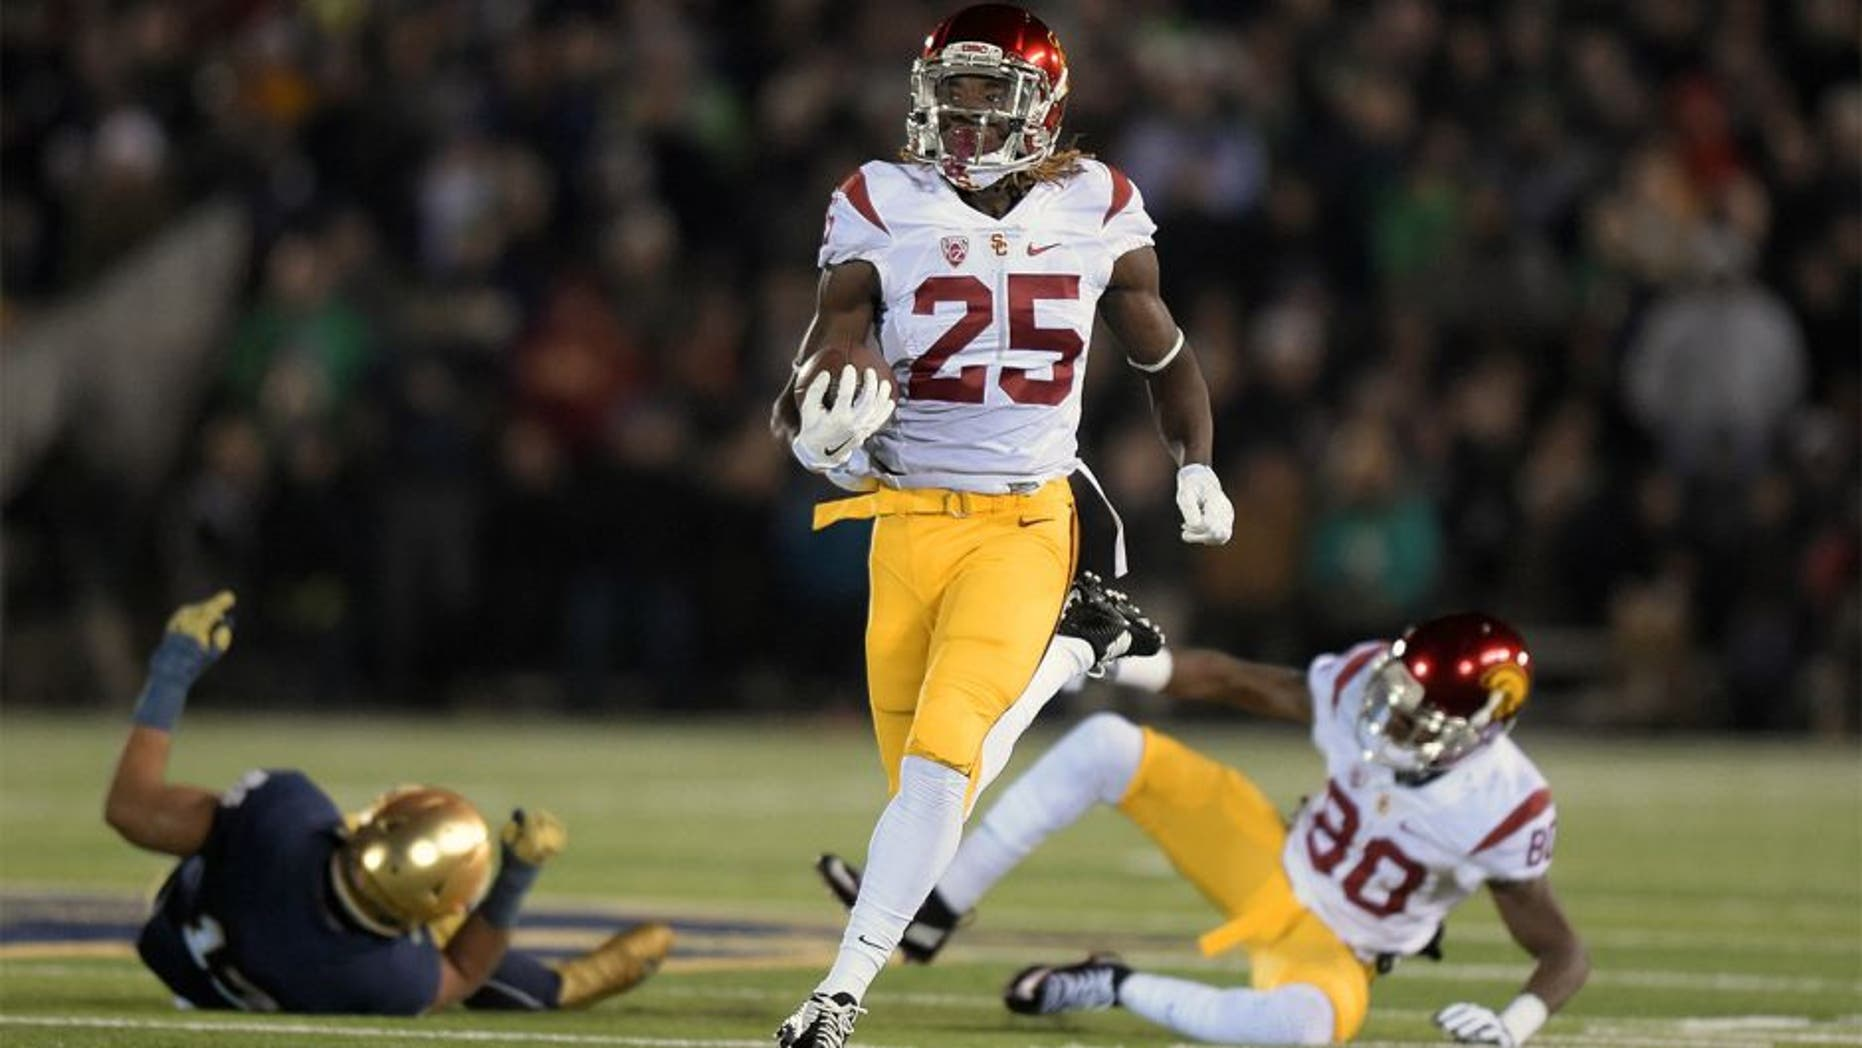 Oct 17, 2015; South Bend, IN, USA; Southern California Trojans tailback Ronald Jones II (25) carries the ball on a 65-yard gain against the Notre Dame Fighting Irish at Notre Dame Stadium. Mandatory Credit: Kirby Lee-USA TODAY Sports